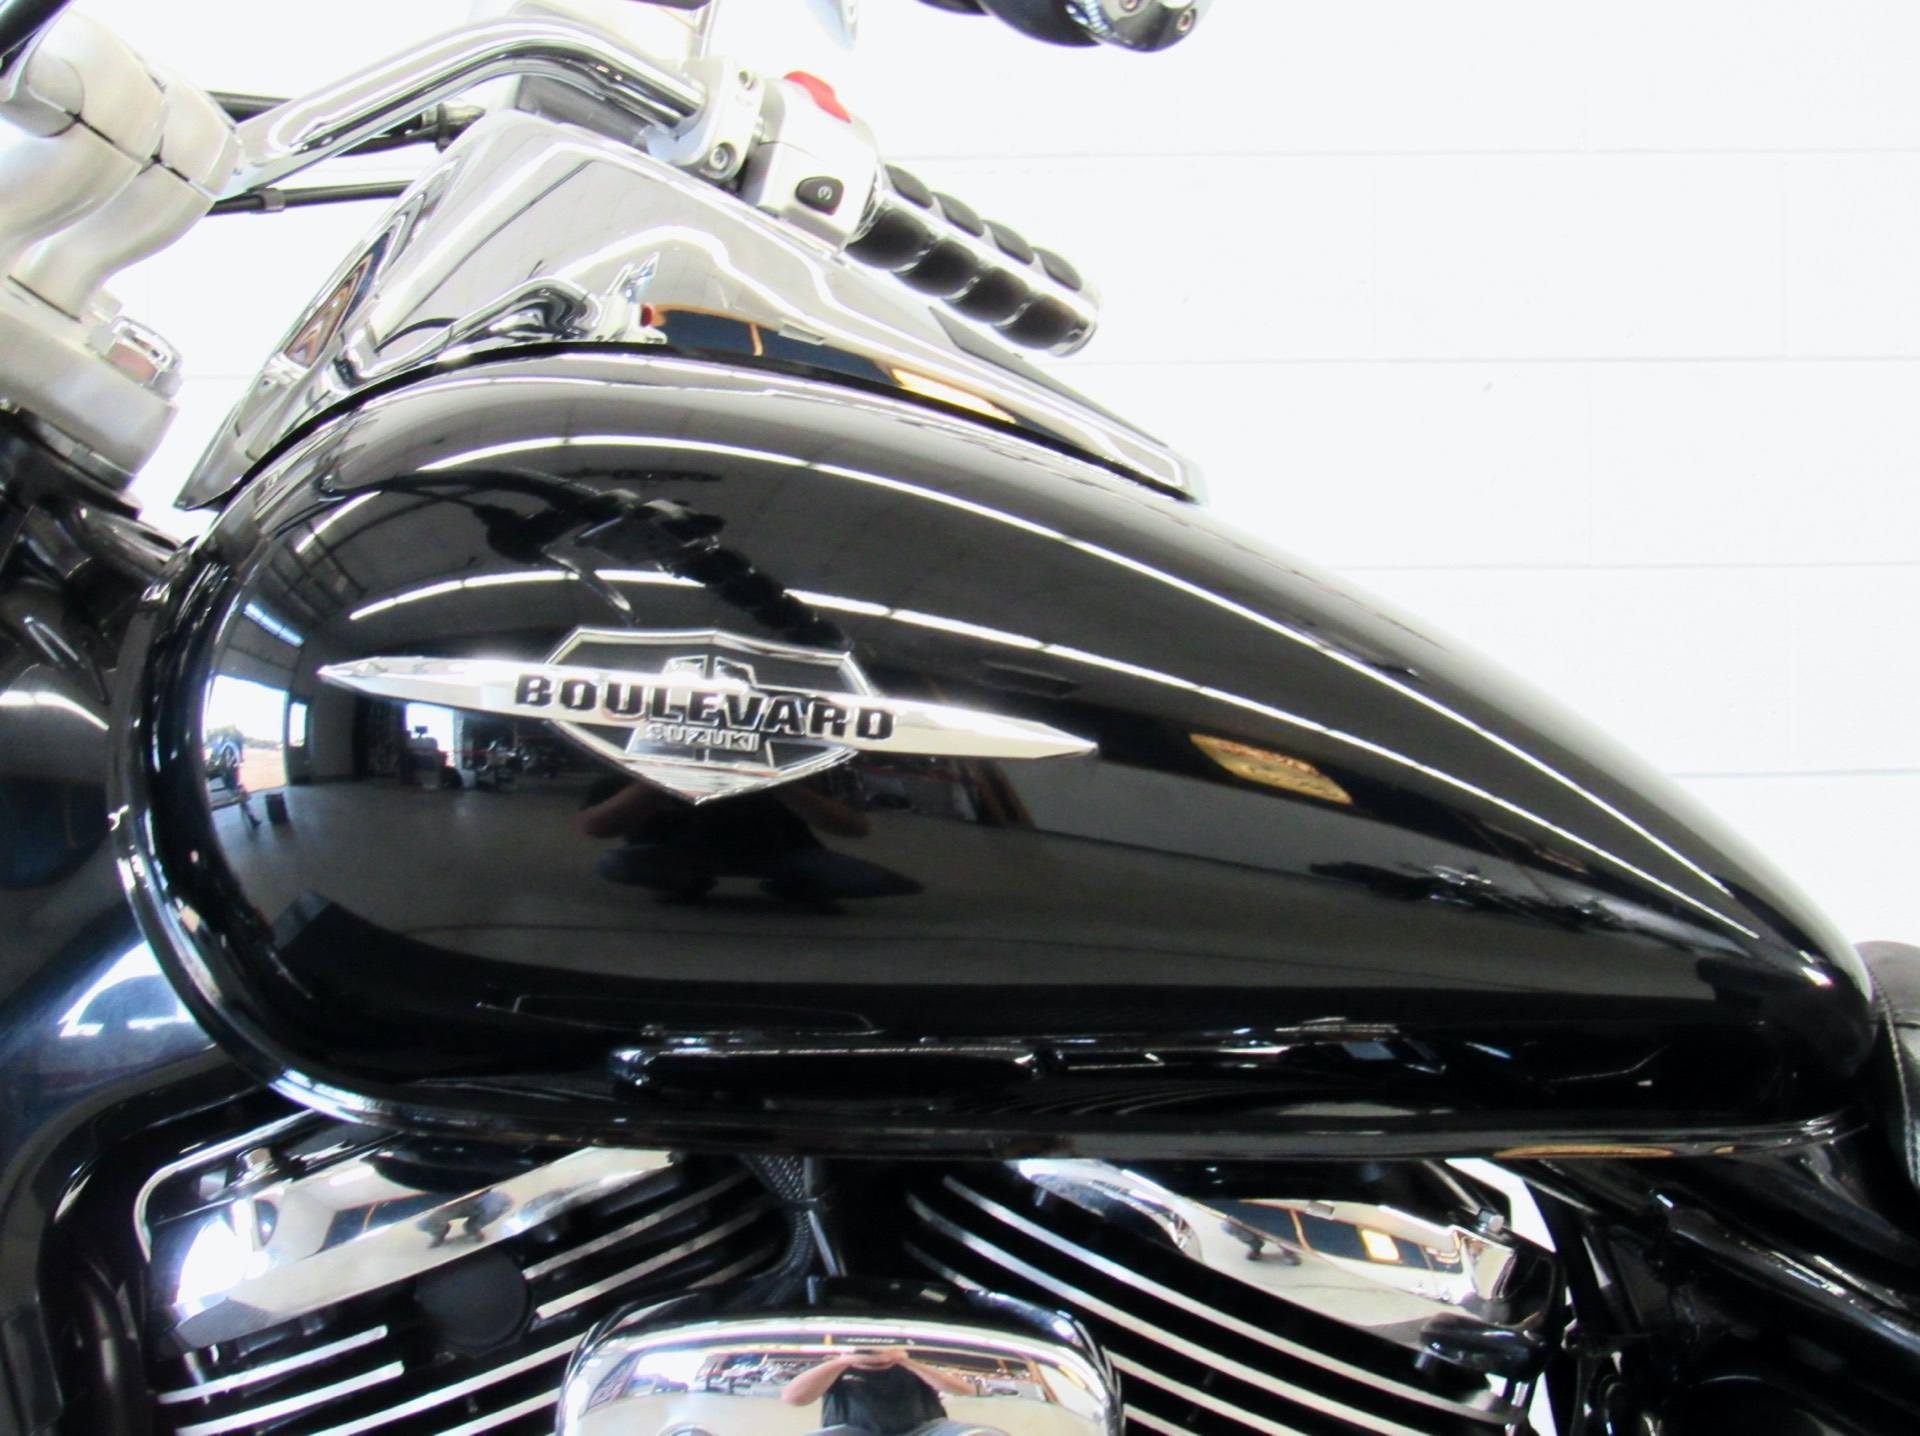 2008 Suzuki Boulevard C50 Black in Fredericksburg, Virginia - Photo 18